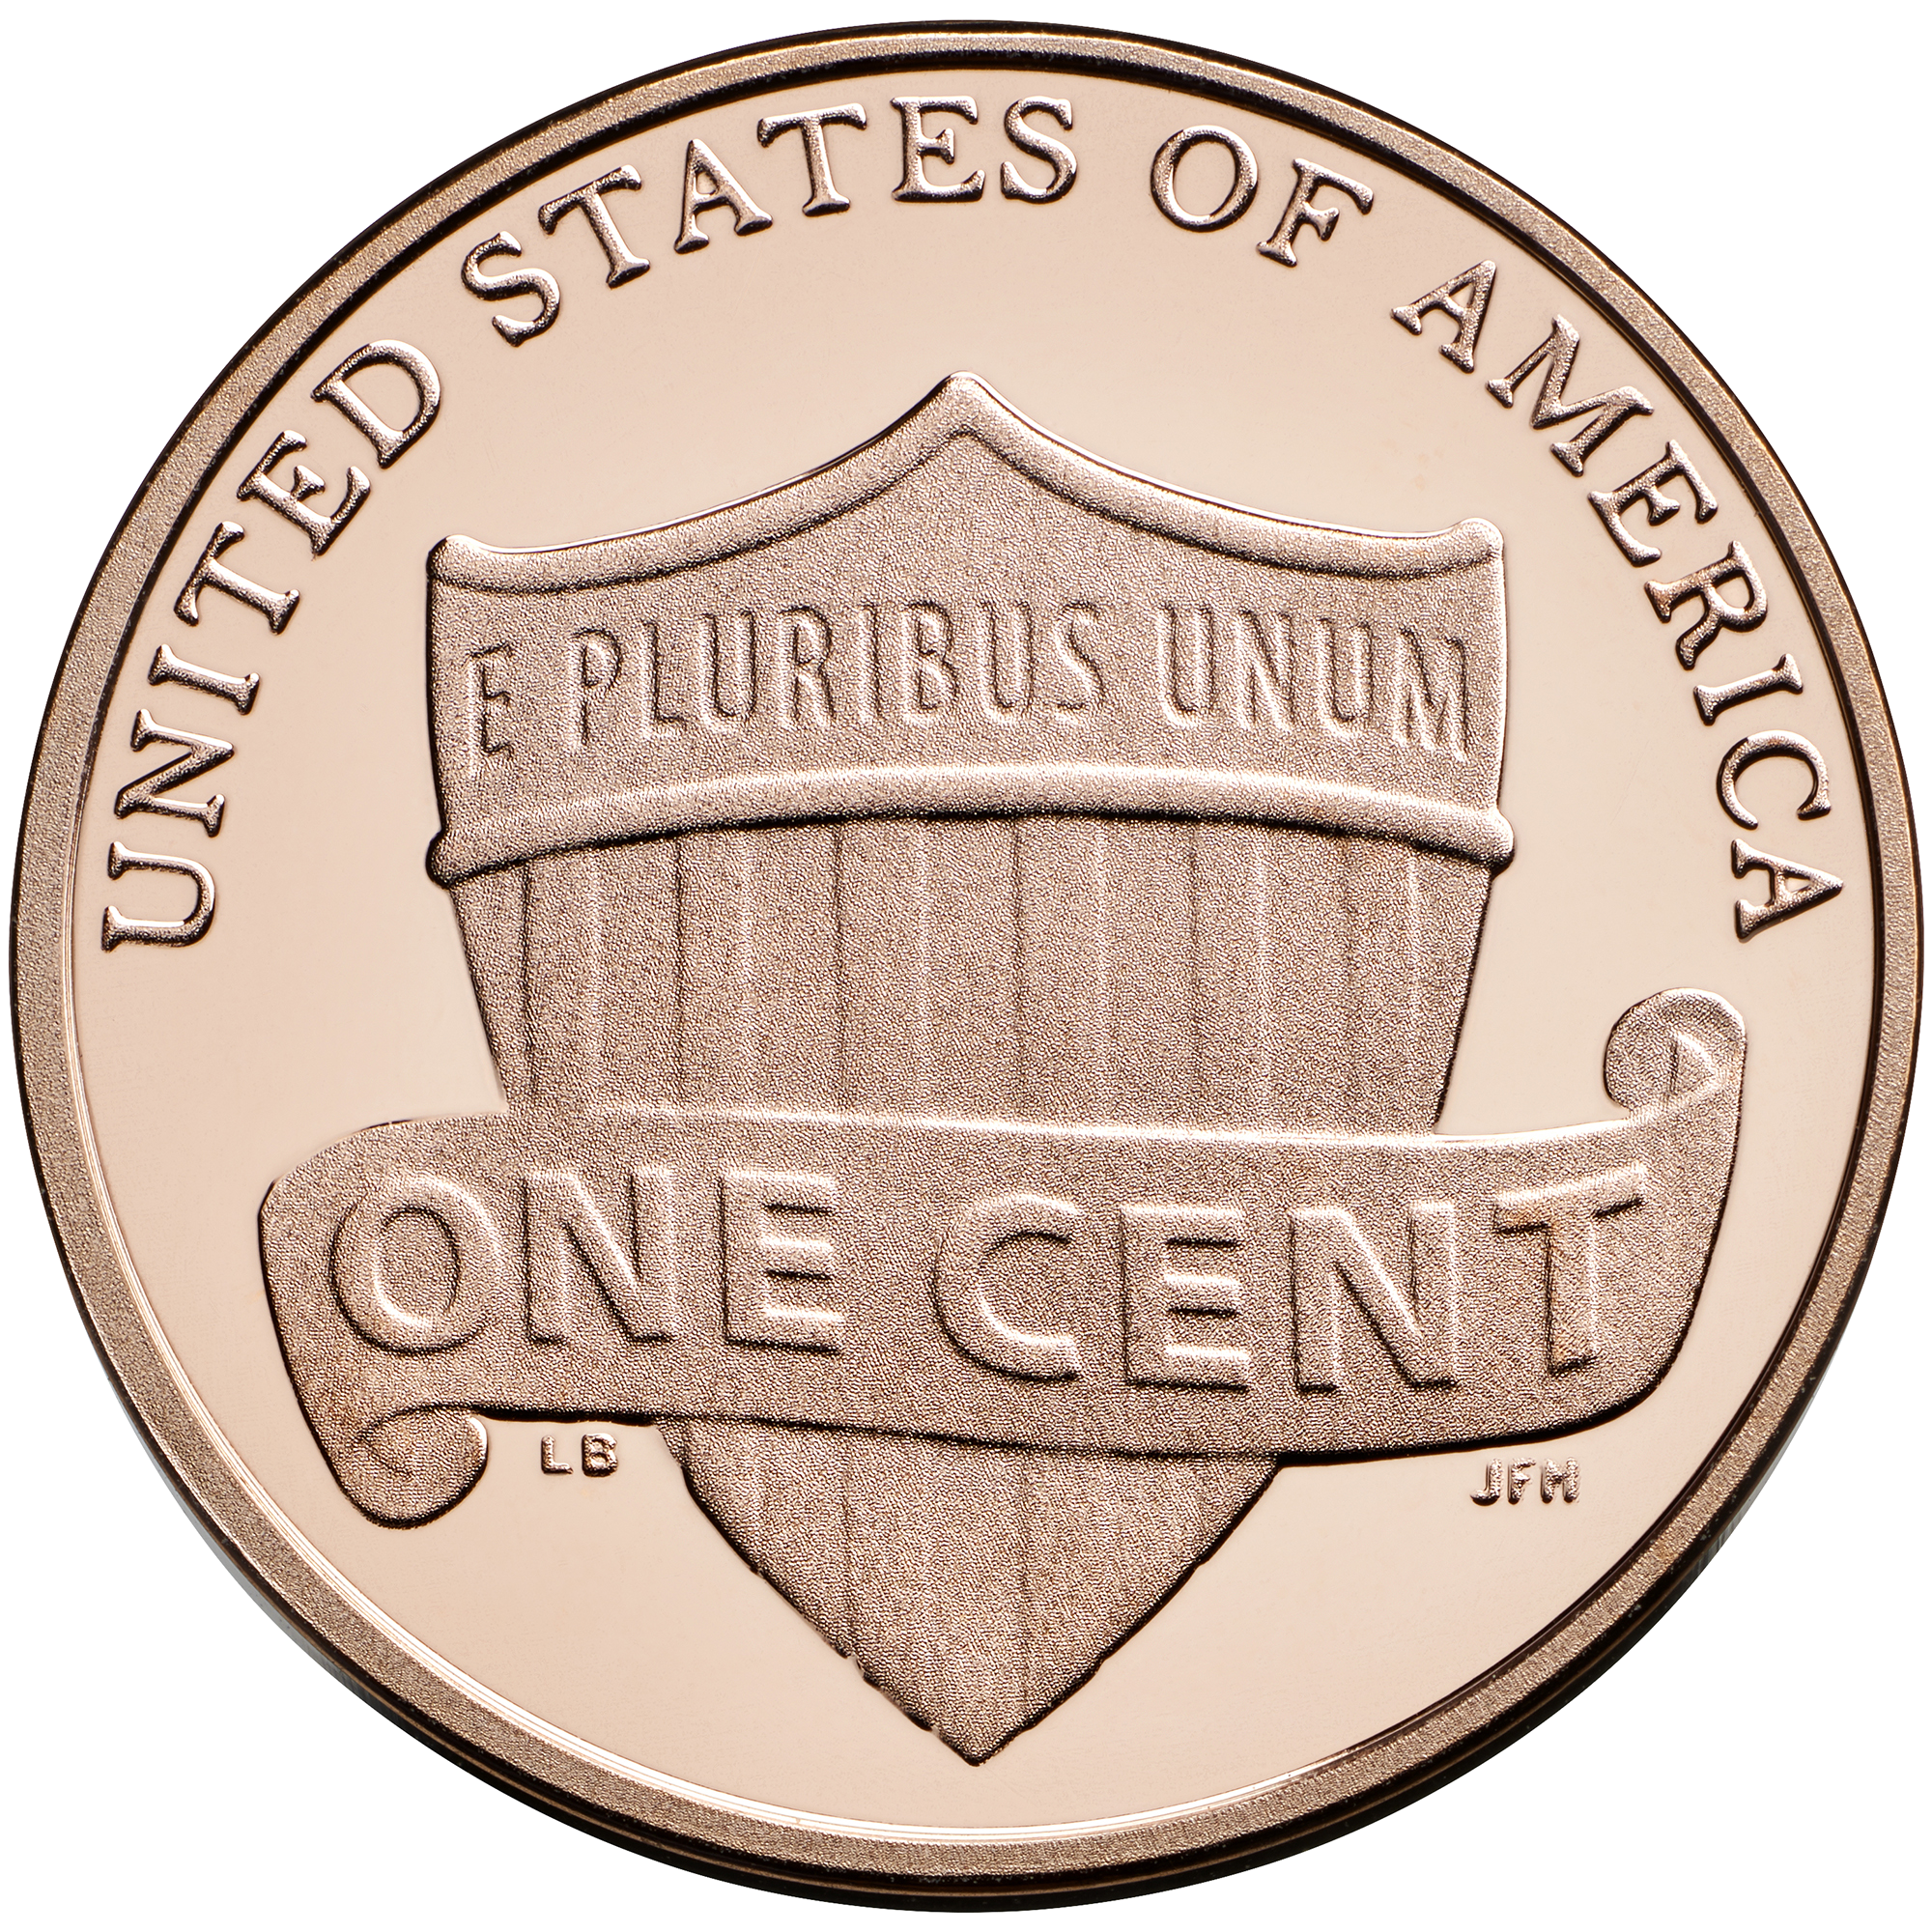 By United States Mint - http://www.usmint.gov/pressroom/index.cfm?flash=no&action=photo#Pres, Public Domain, https://commons.wikimedia.org/w/index.php?curid=31105133